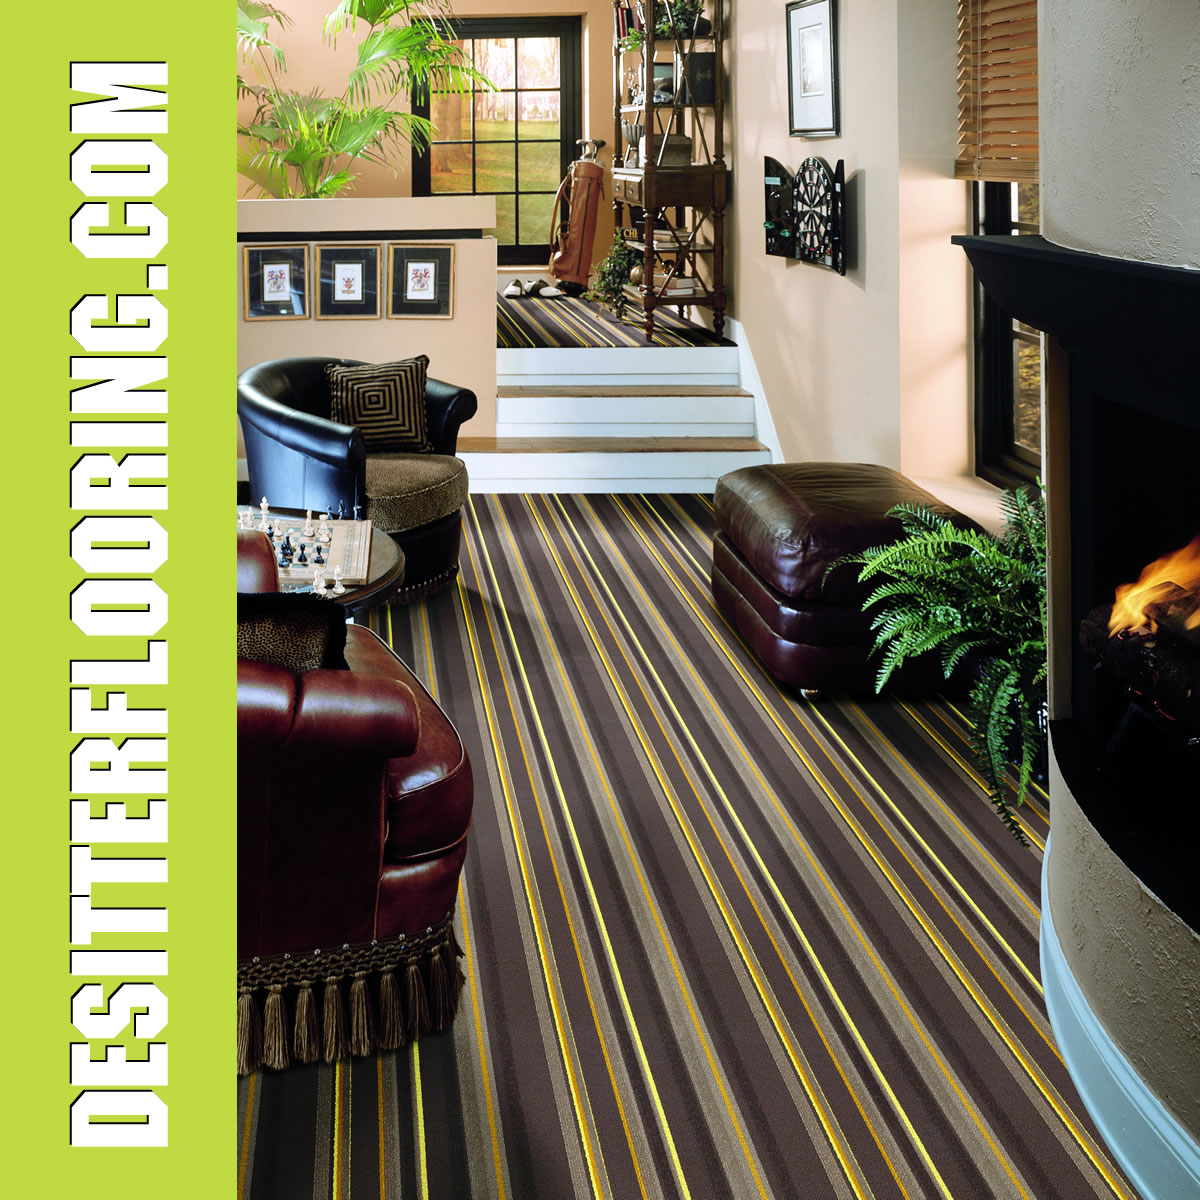 Desitter desitter flooring give your stairs and carpeting an updated look call desitter flooring 630 948 5582 or contact us online today for a free estimate tyukafo